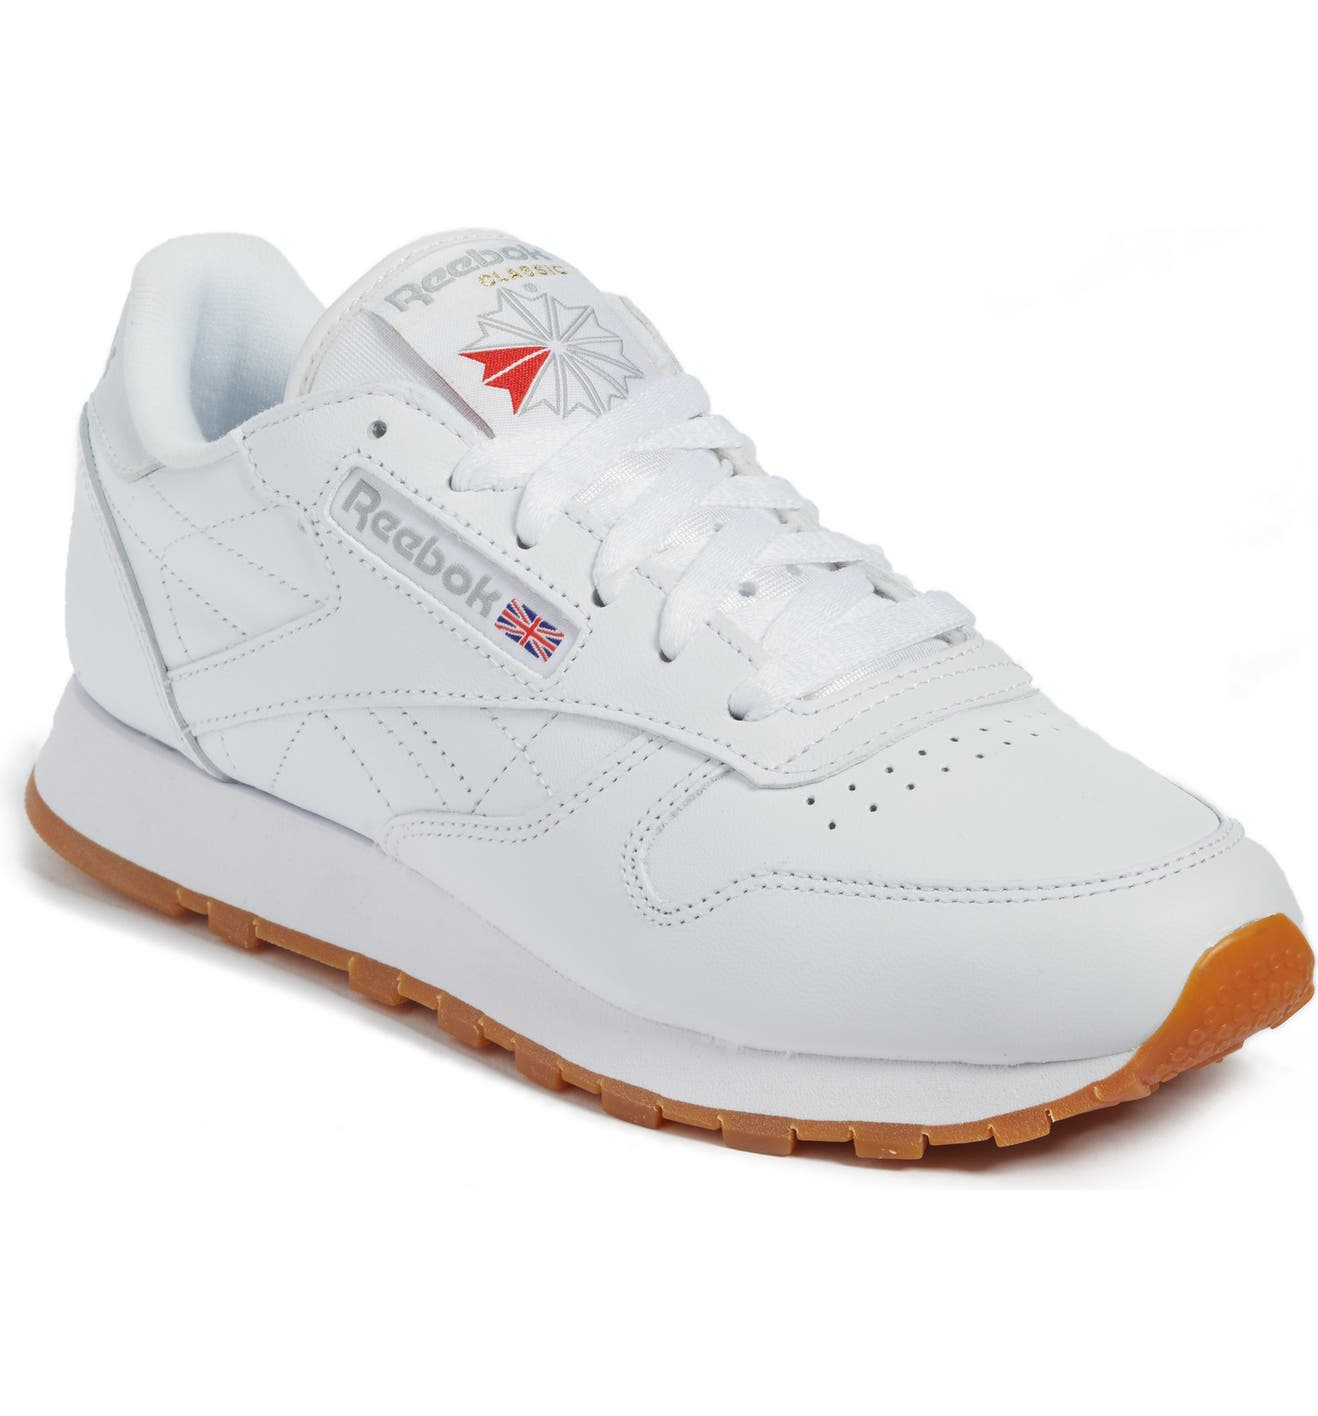 5c690ebda42c Reebok Classic Leather Sneaker (Women)